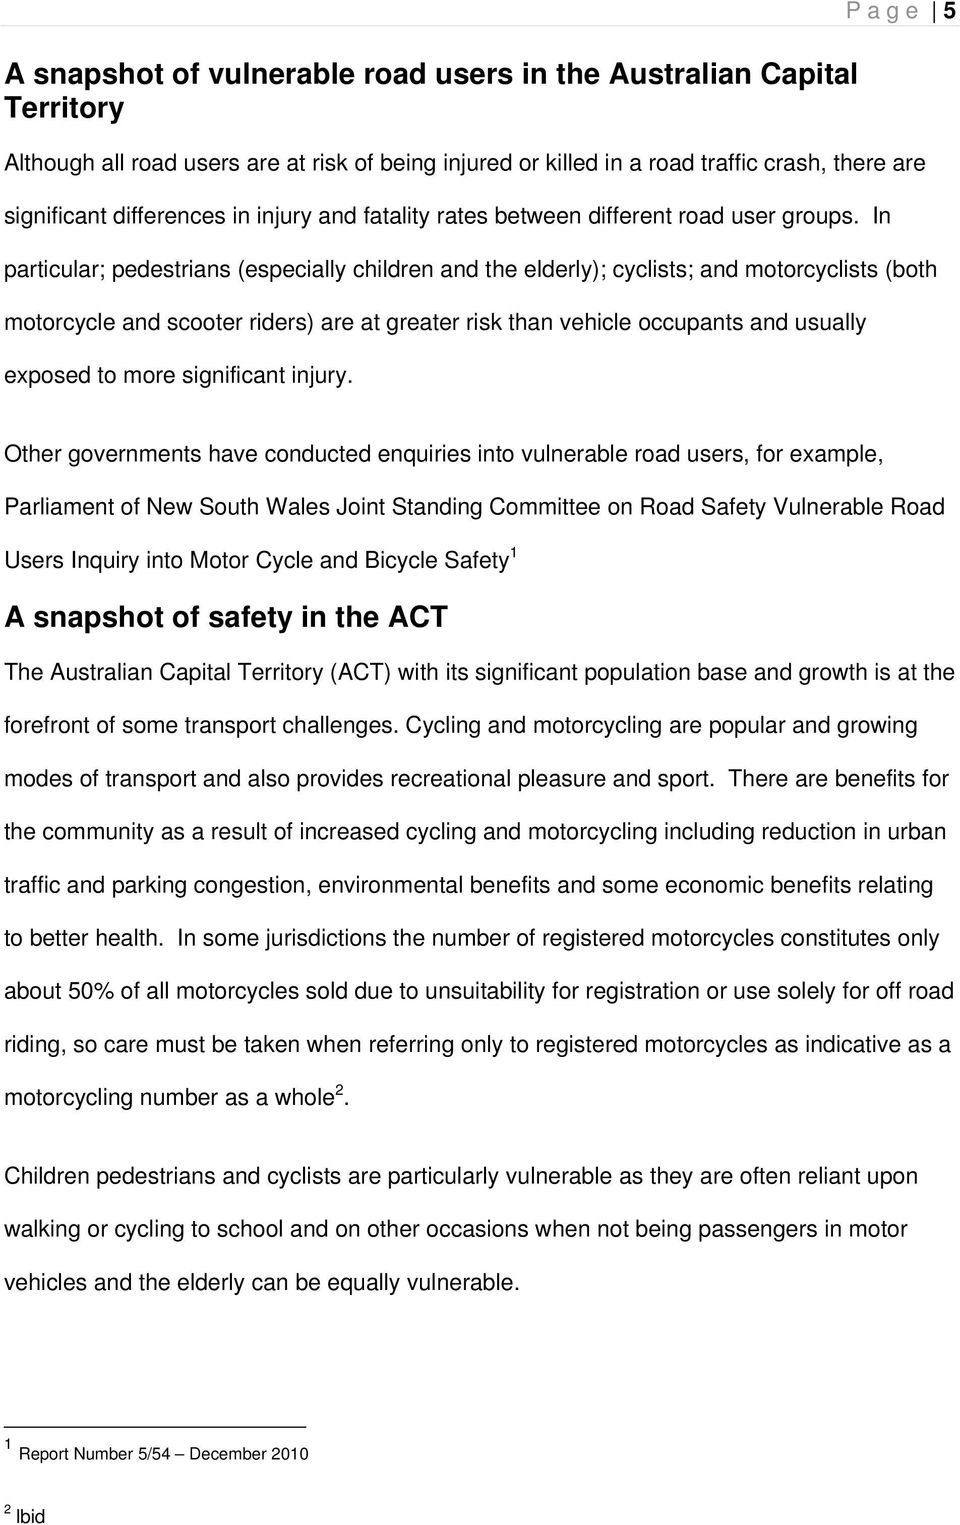 In particular; pedestrians (especially children and the elderly); cyclists; and motorcyclists (both motorcycle and scooter riders) are at greater risk than vehicle occupants and usually exposed to